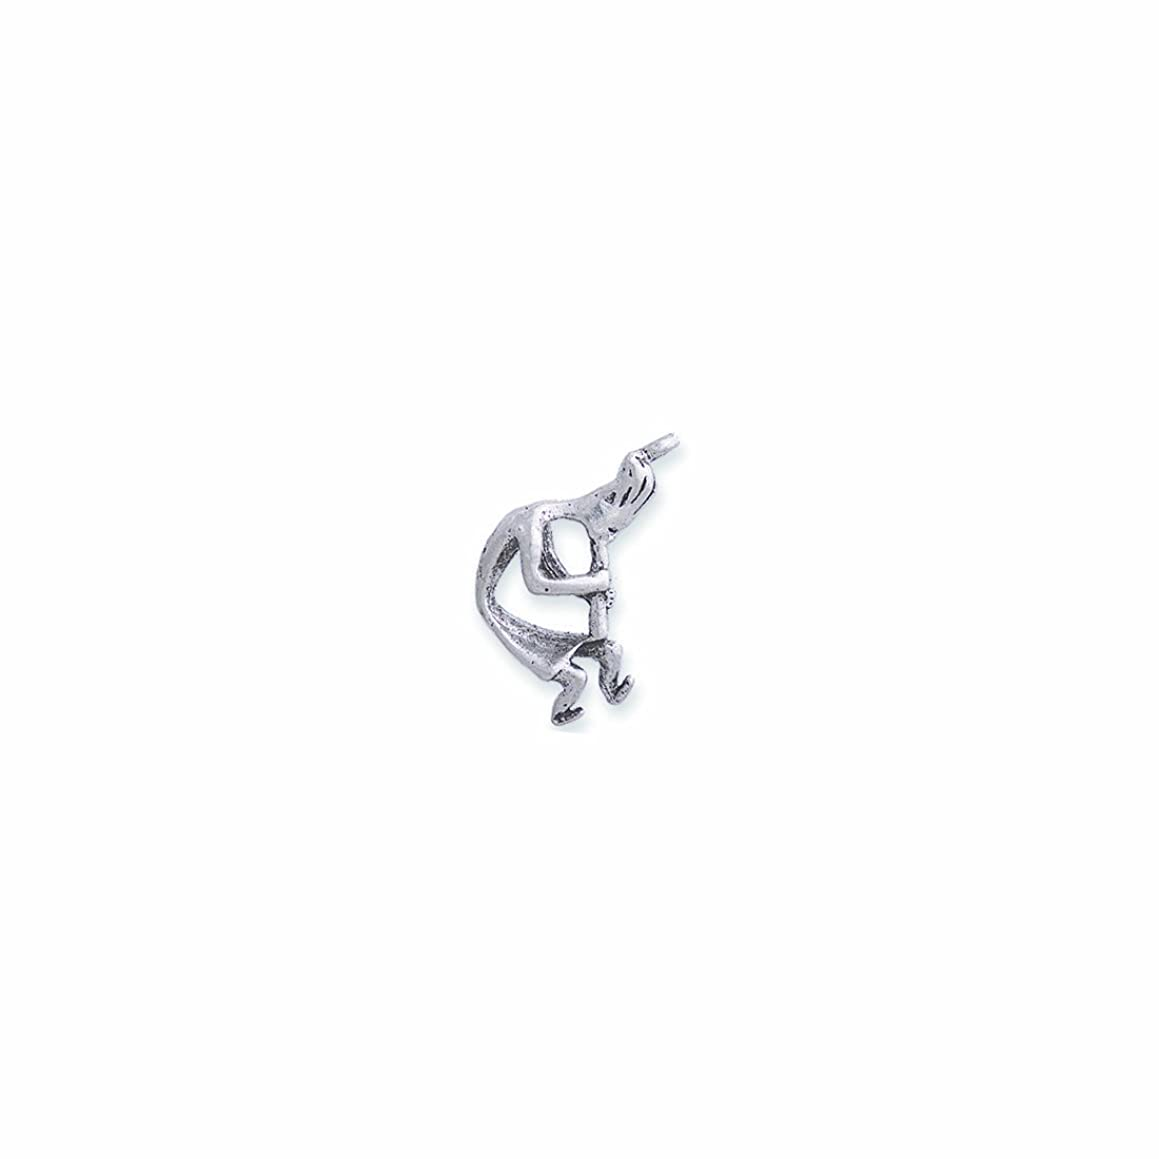 Shipwreck Beads Pewter Kokopelli Charm, Silver, 13 by 26mm, 4-Piece